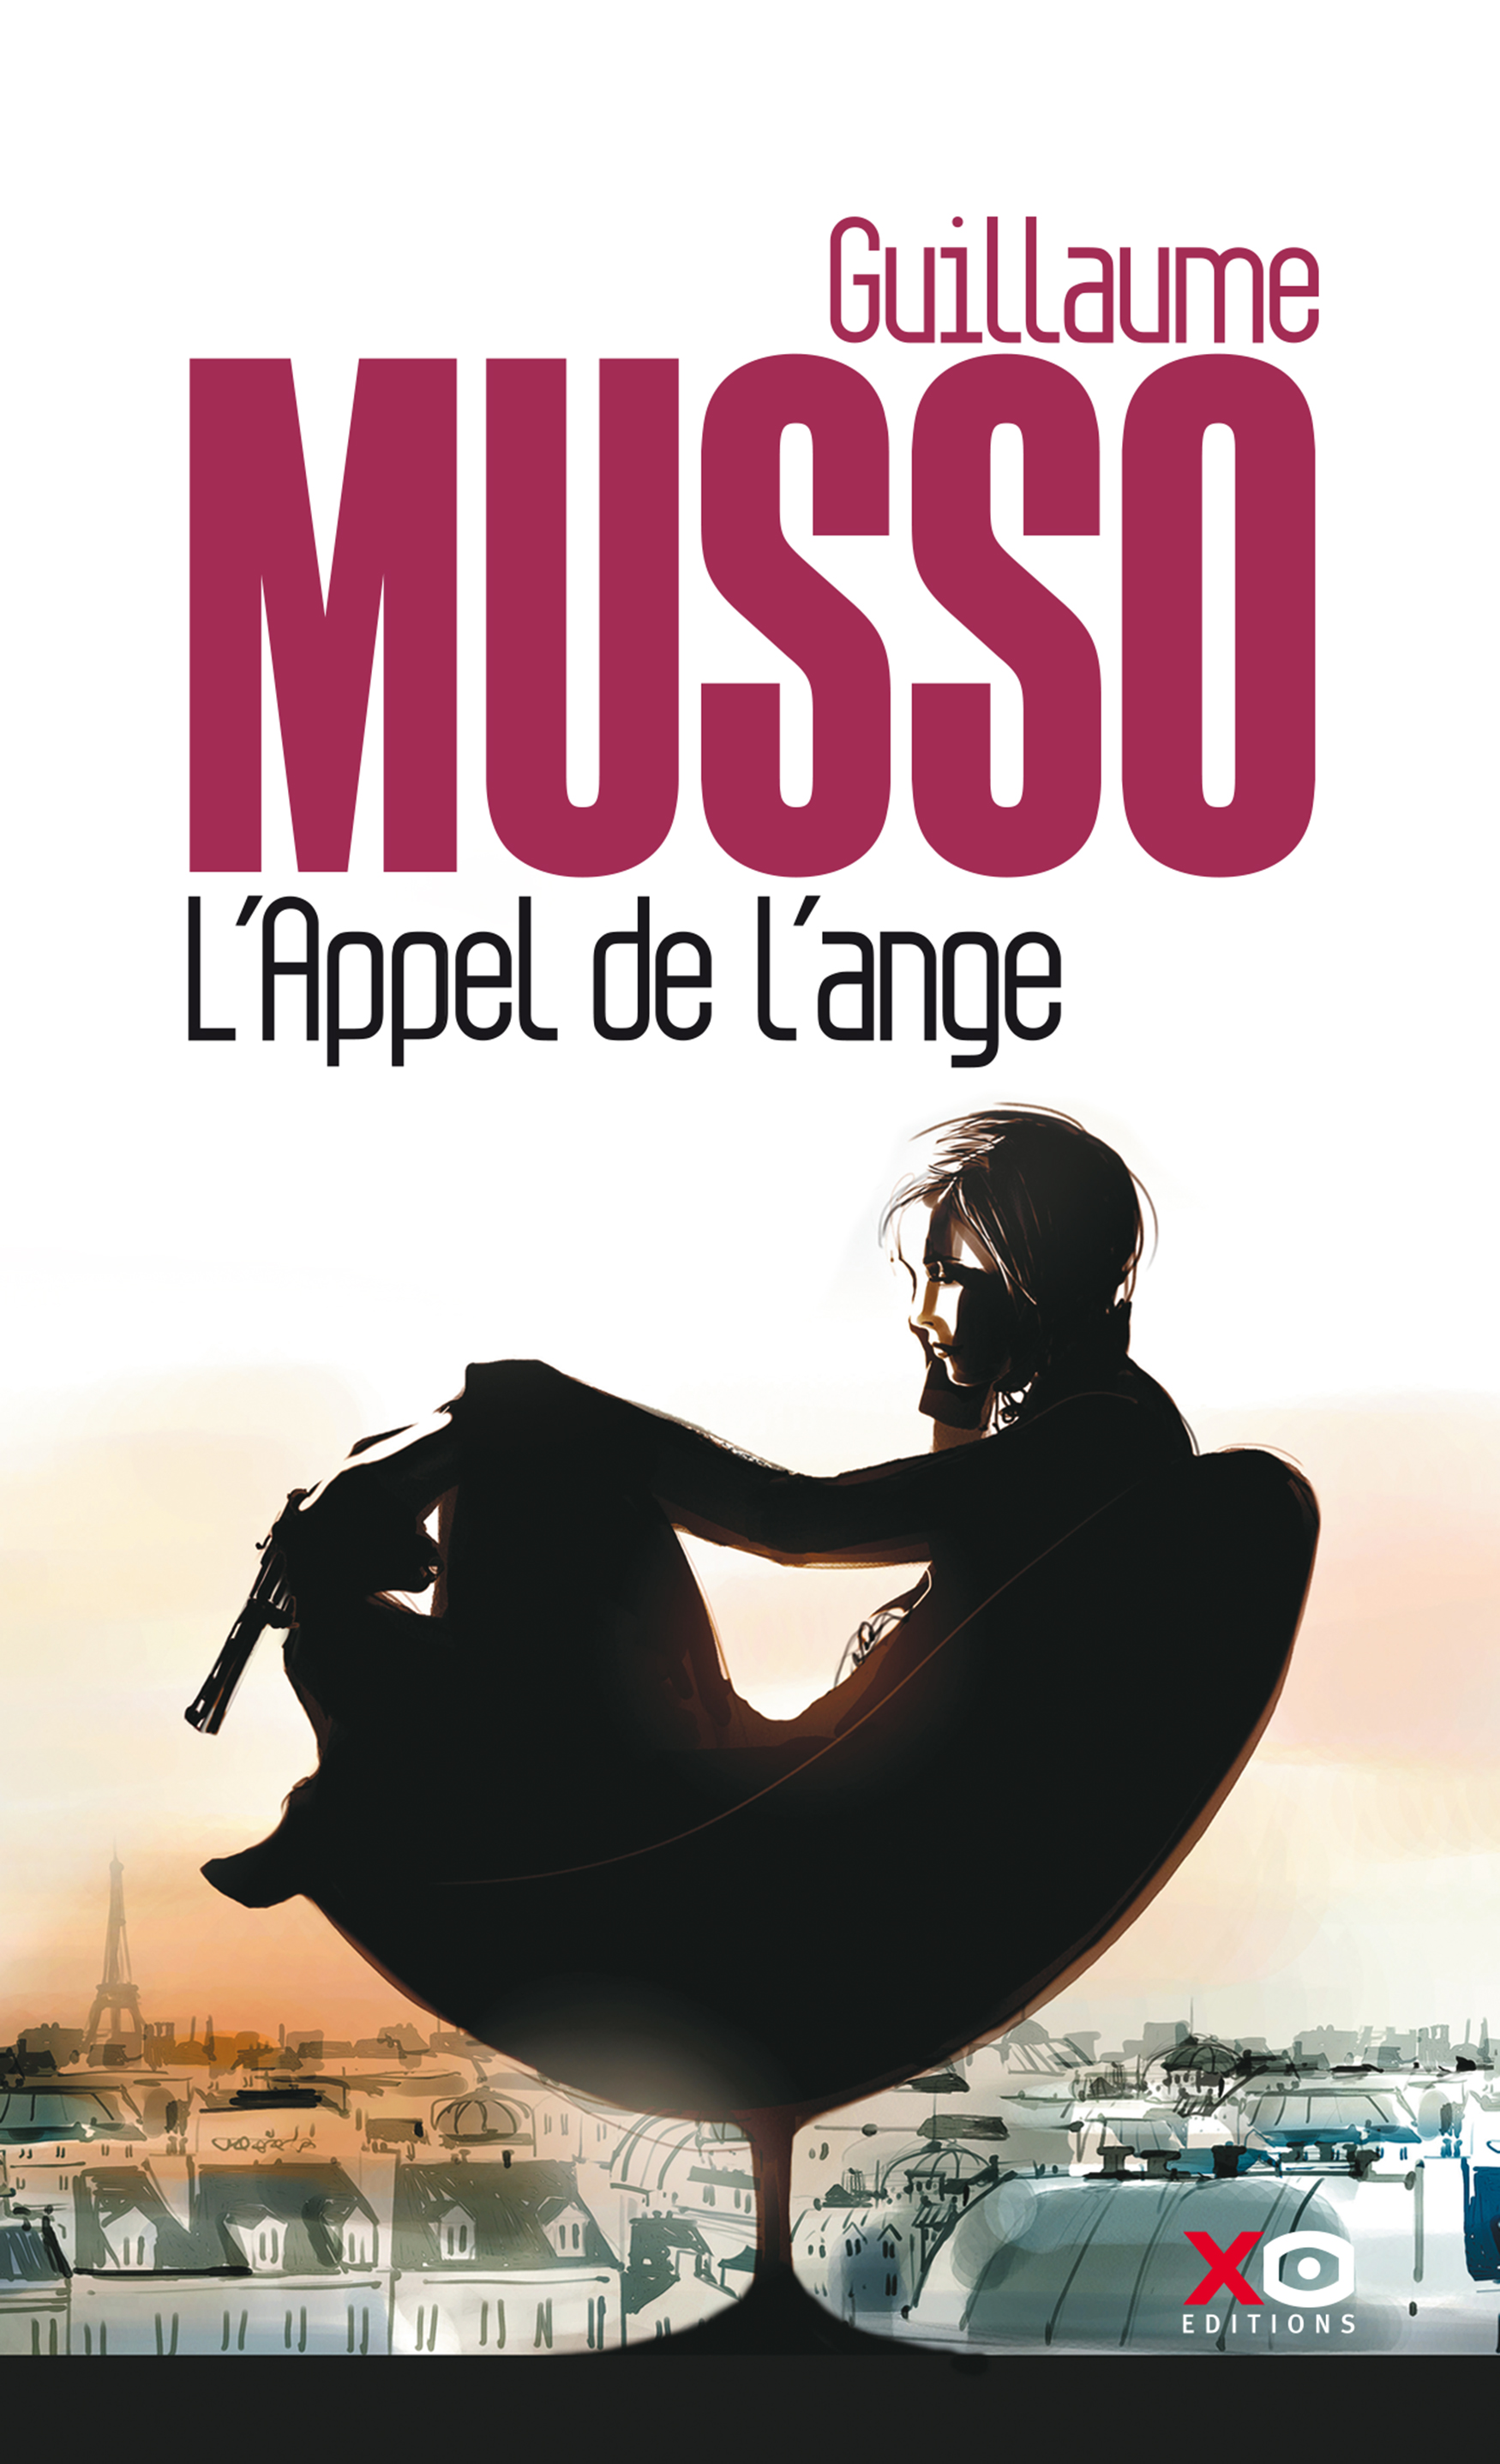 Musso Bericht Uit Parijs.Call From An Angel Guillaume Musso Xo Editions